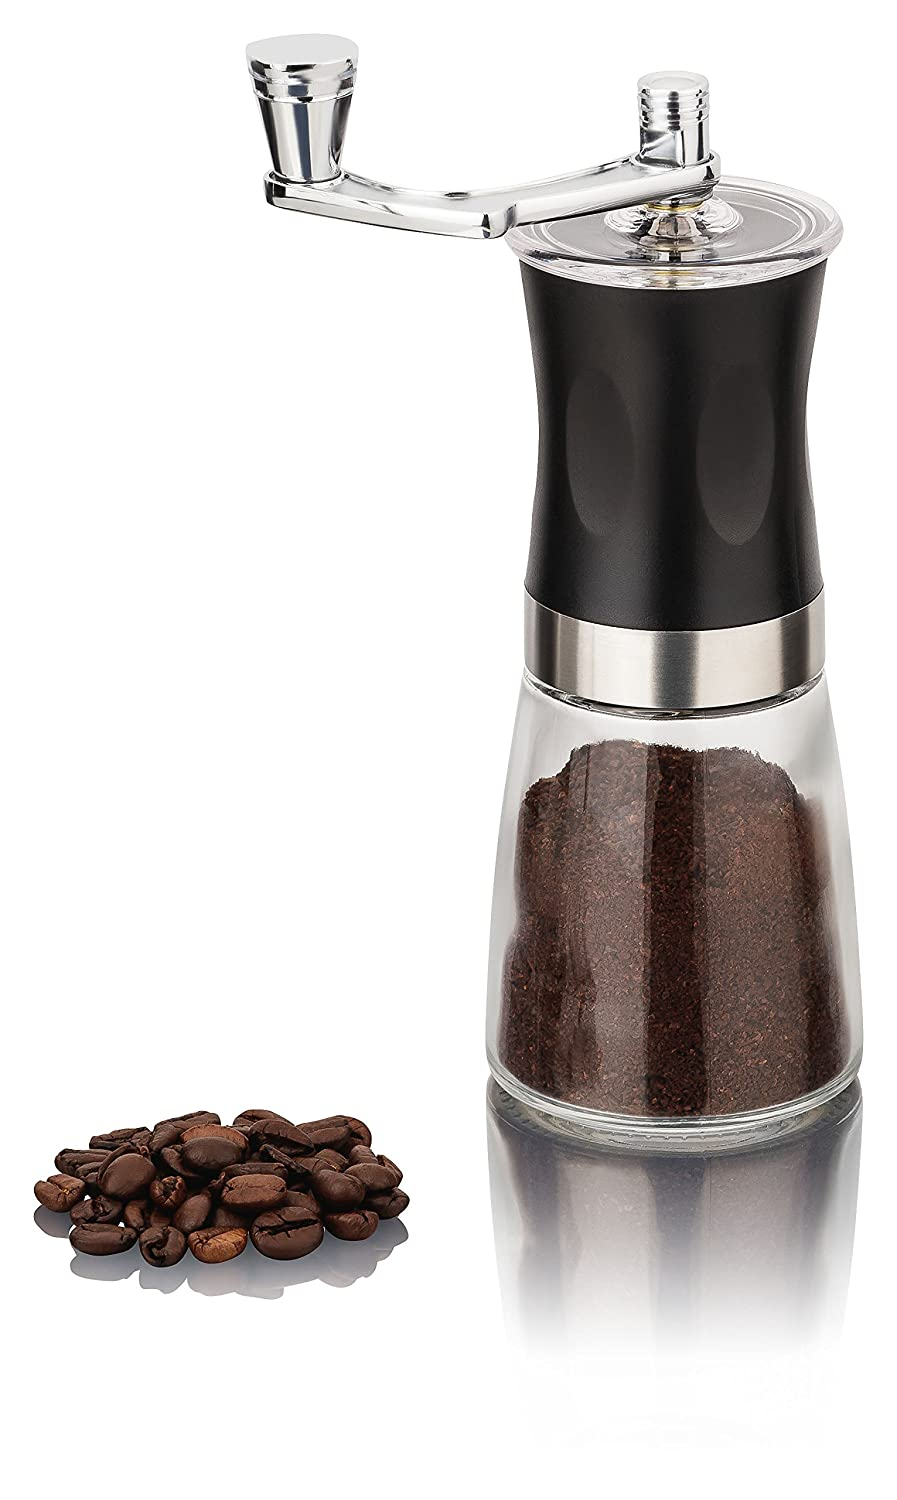 Manual Coffee Grinder with Ceramic Grinding Mechanism, Glass, Can Be Continuously Adjusted Manual Coffee Grinder Krüger&Gregoriades